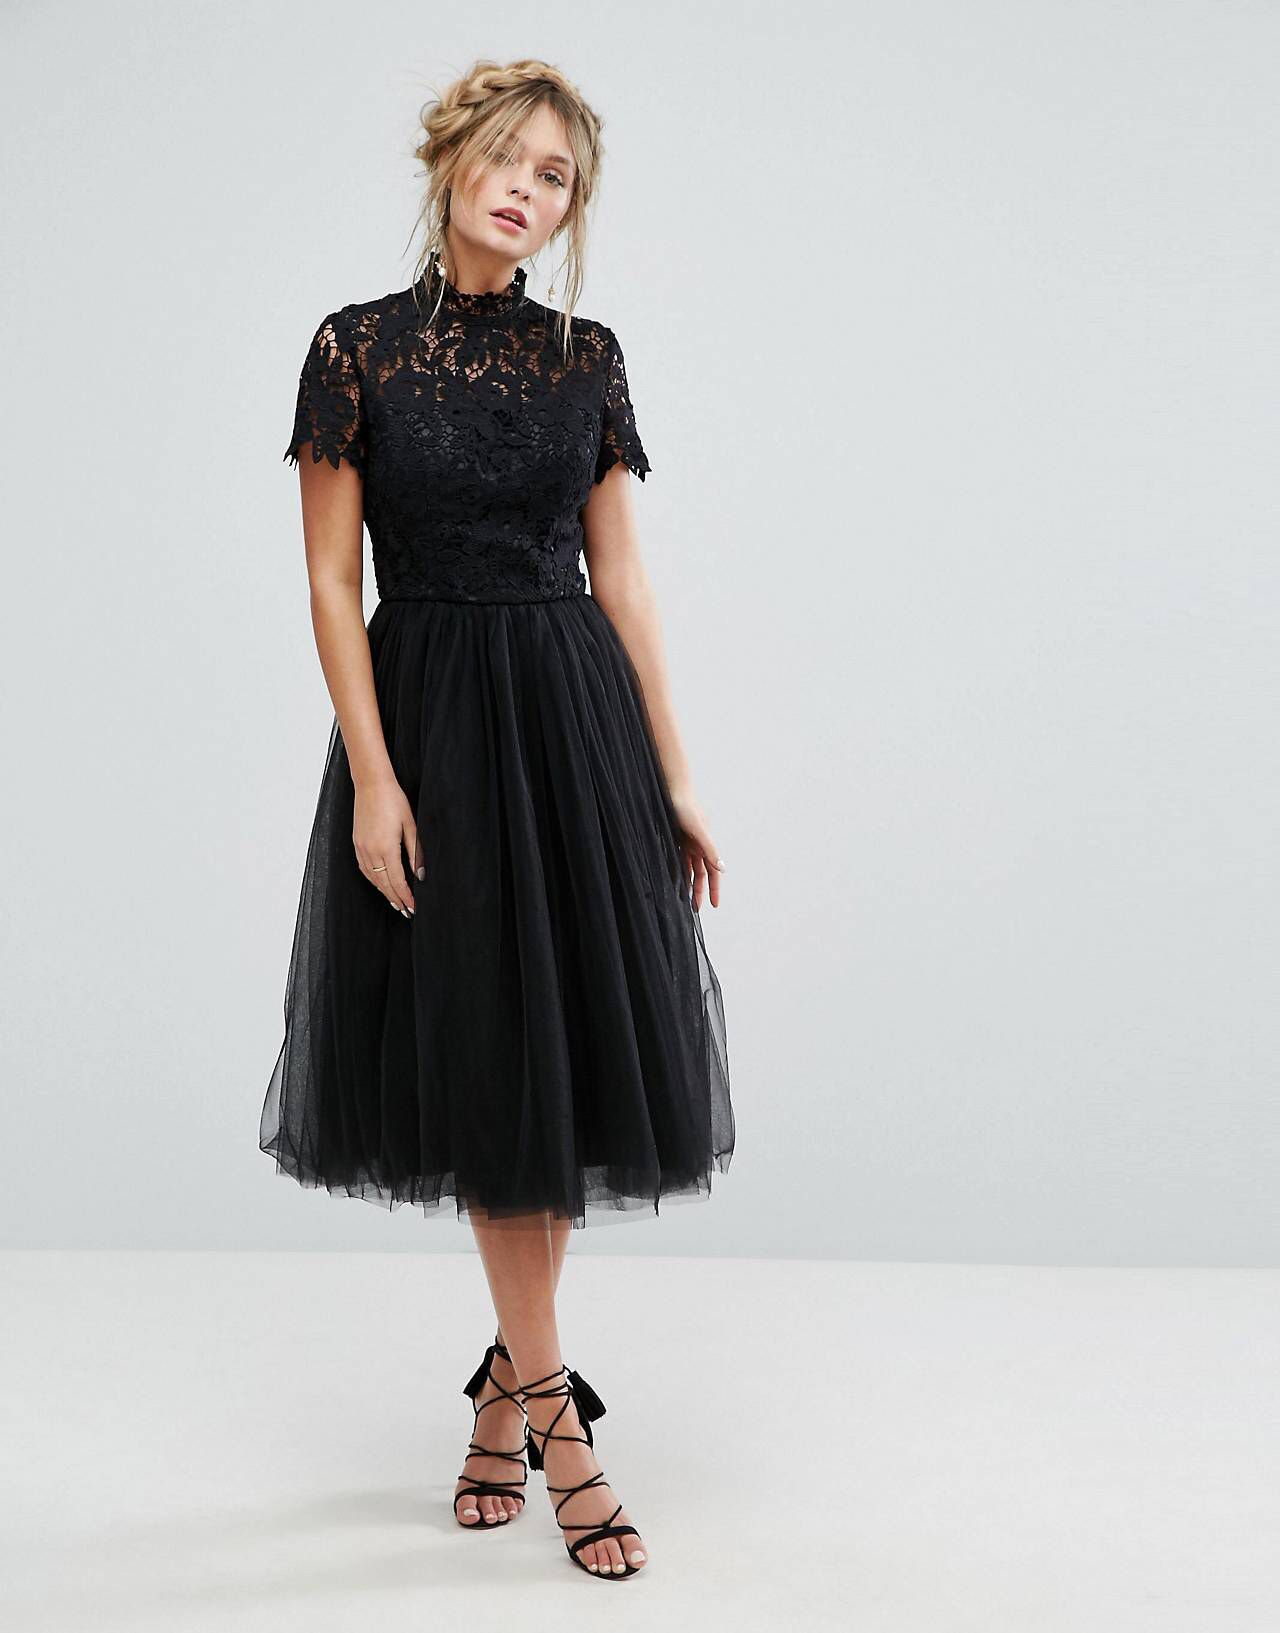 41c2ebdf1ea2 Chi Chi London high neck lace midi dress with tulle skirt in black ...